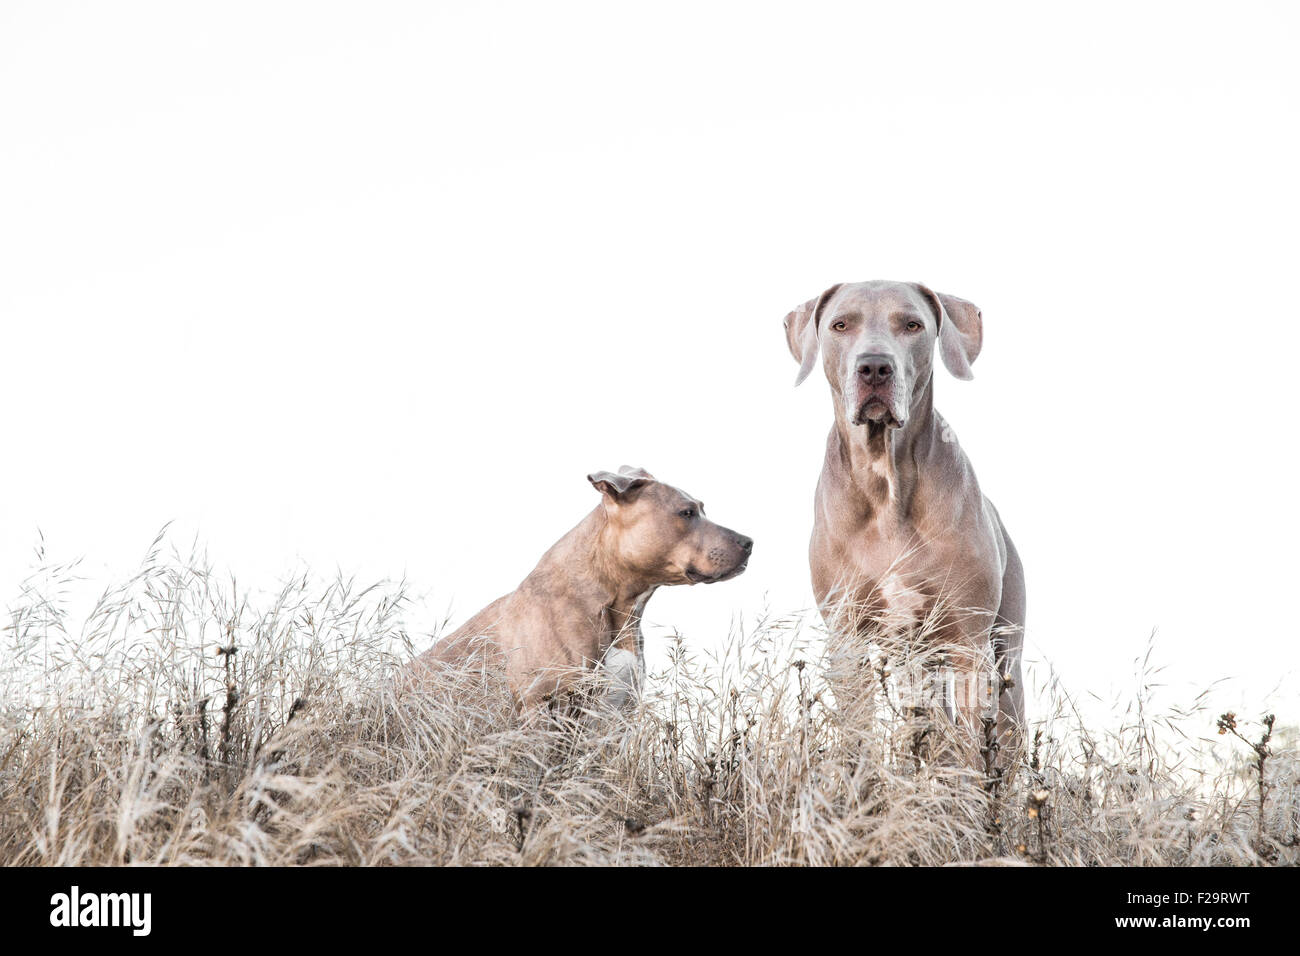 Weimaraner and Pitbull standing amid tall dry grass in field, one facing wrong way, negative space for copy - Stock Image